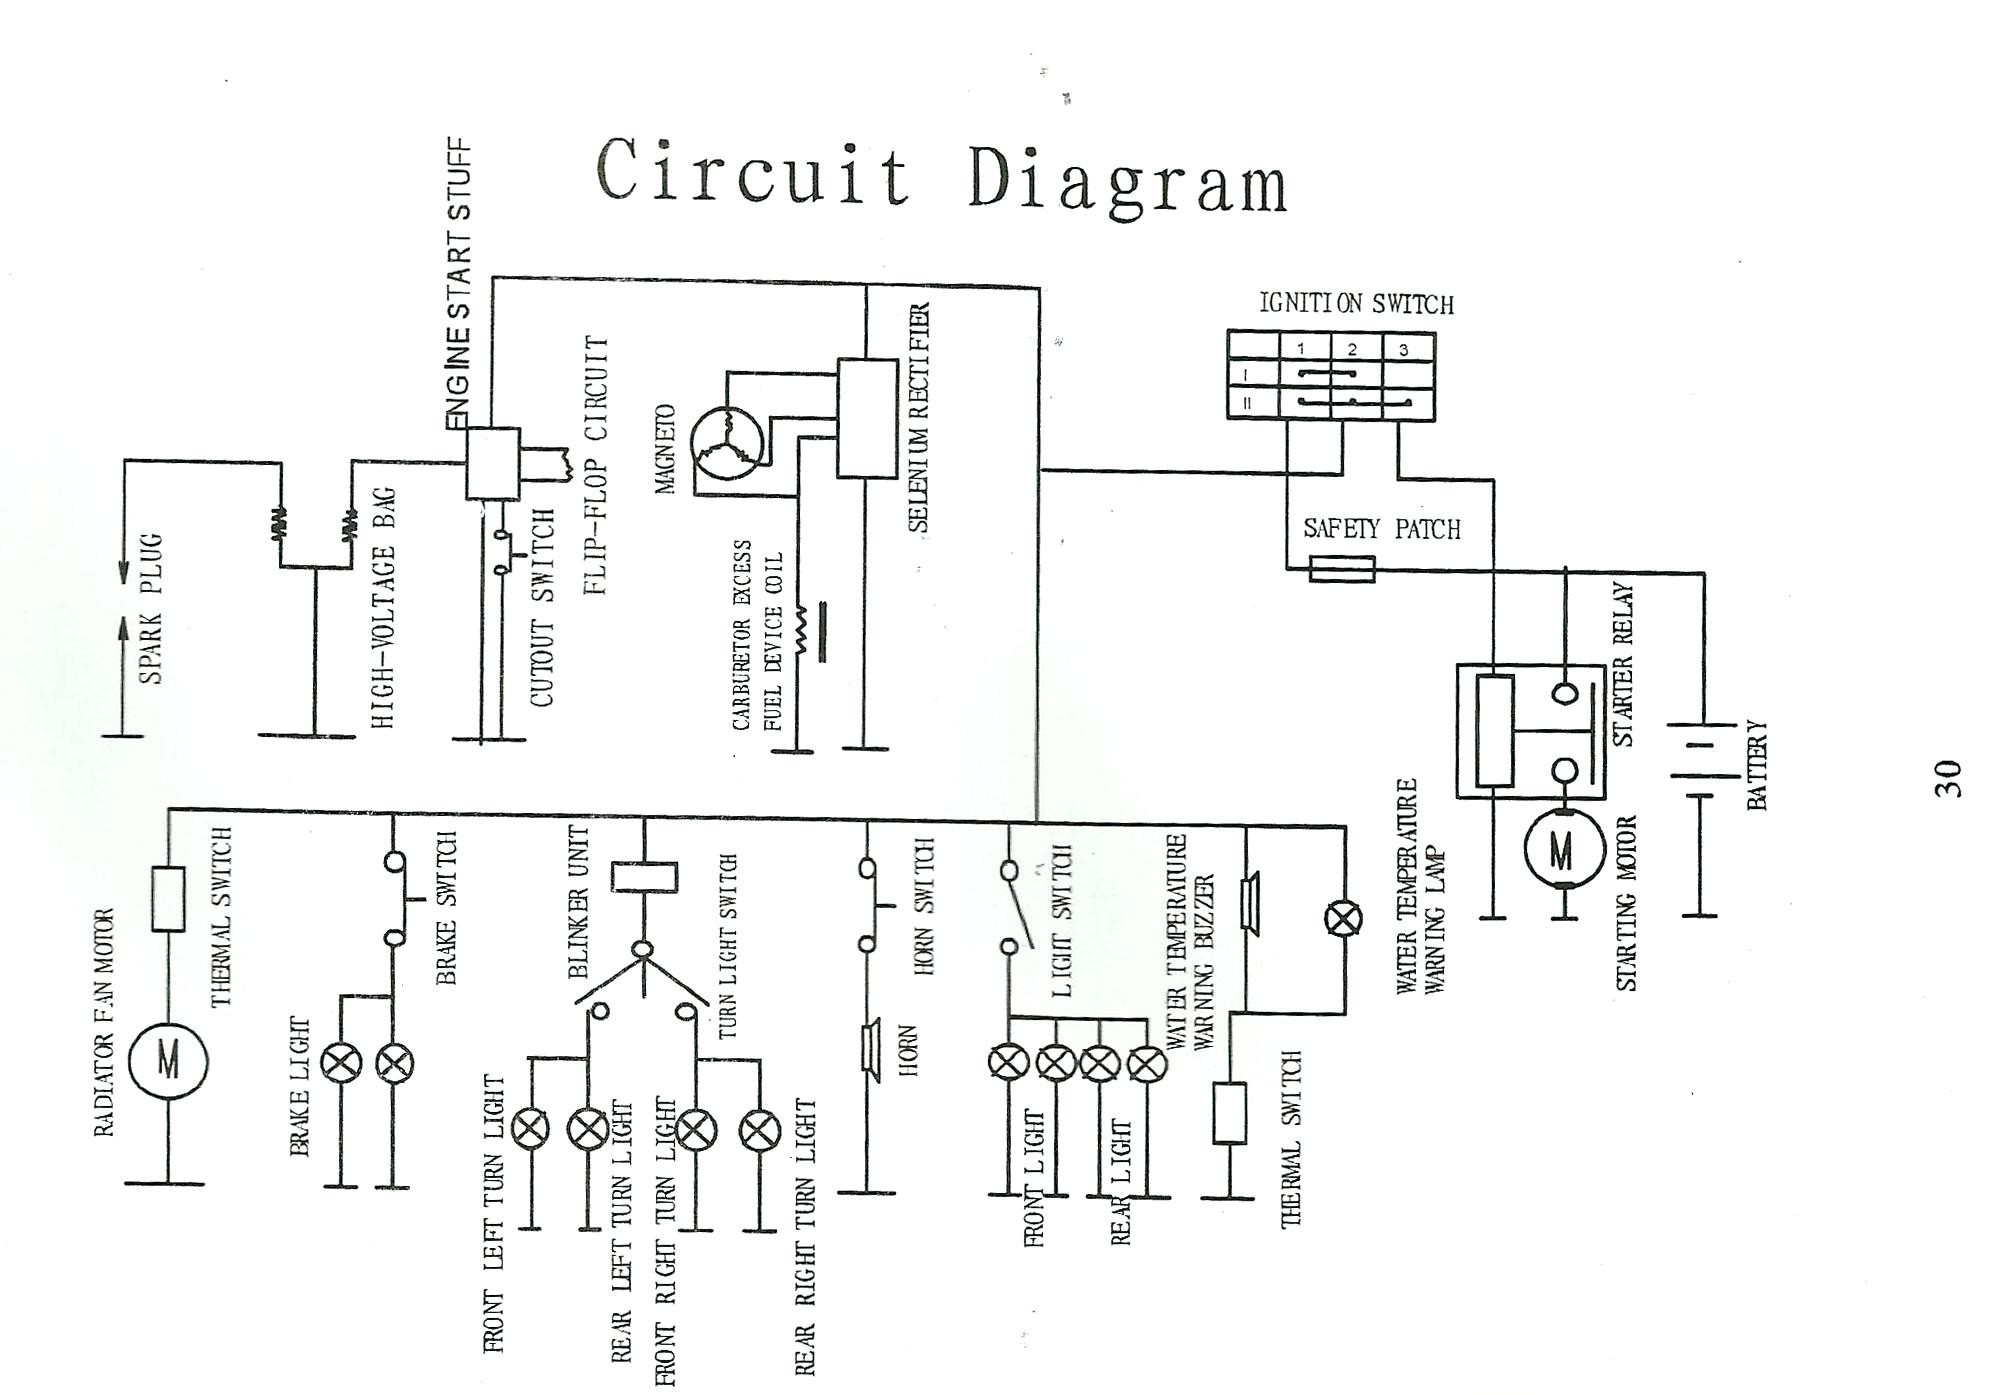 107cc Engine Wiring Diagram Trusted Diagrams Easy U2022 Rh Art Isere Com 125cc Dirt Bike